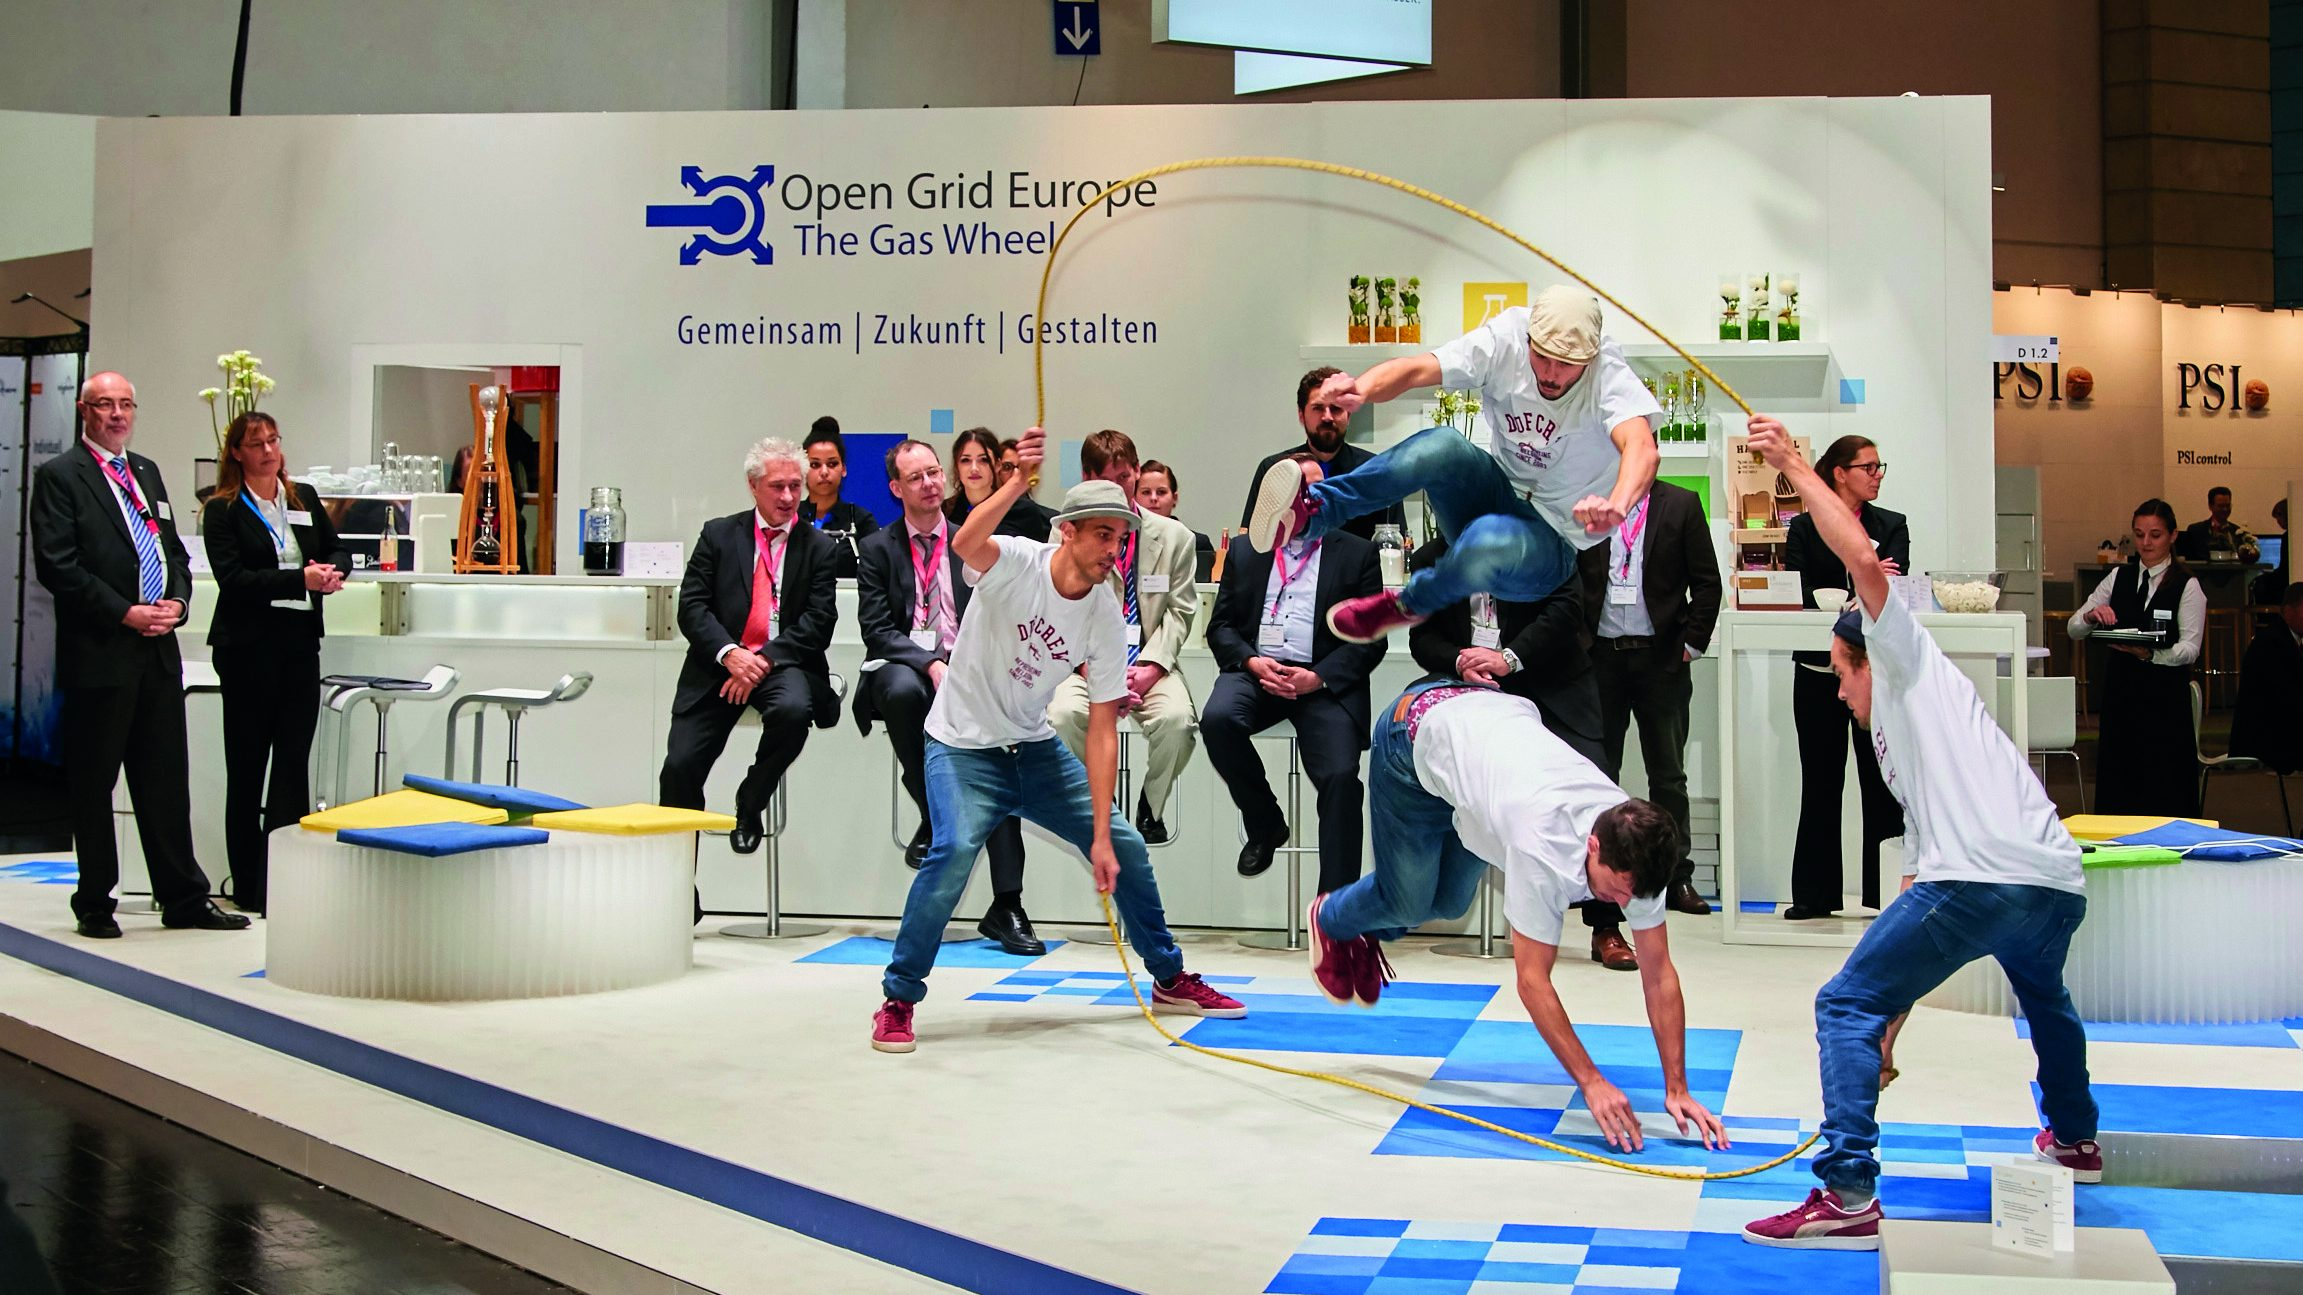 gat wat open grid europe the gas wheel messe essen